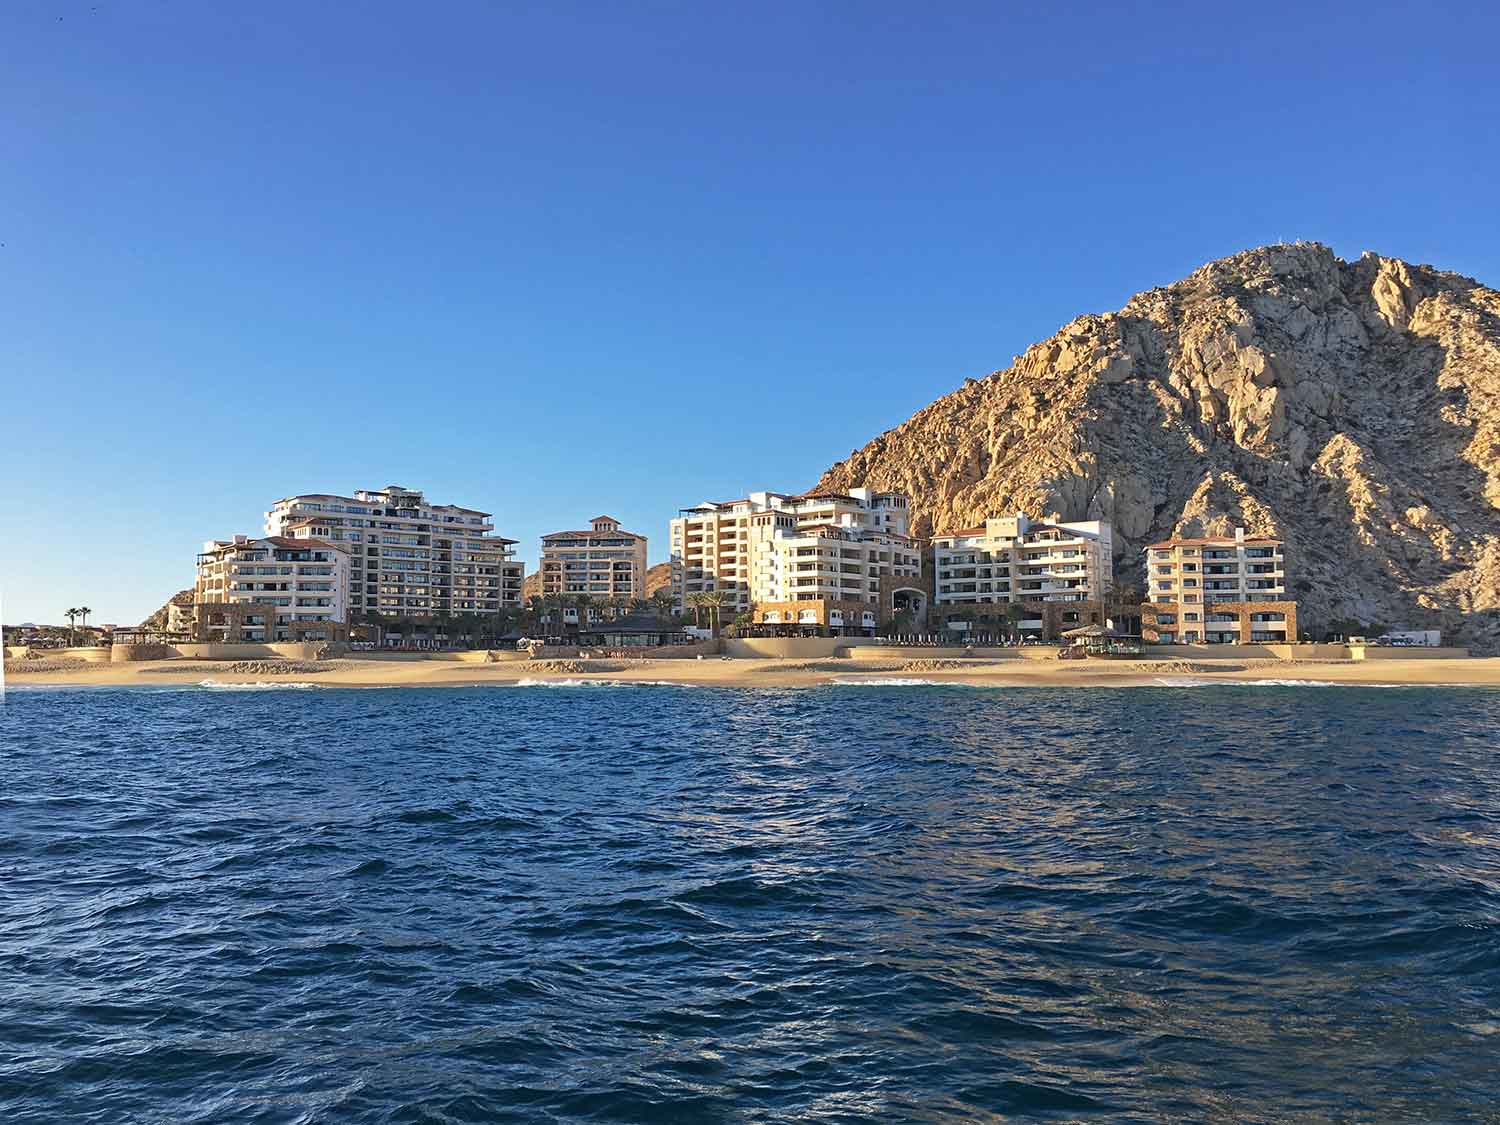 Opinion nude resort cabo san lucas something also